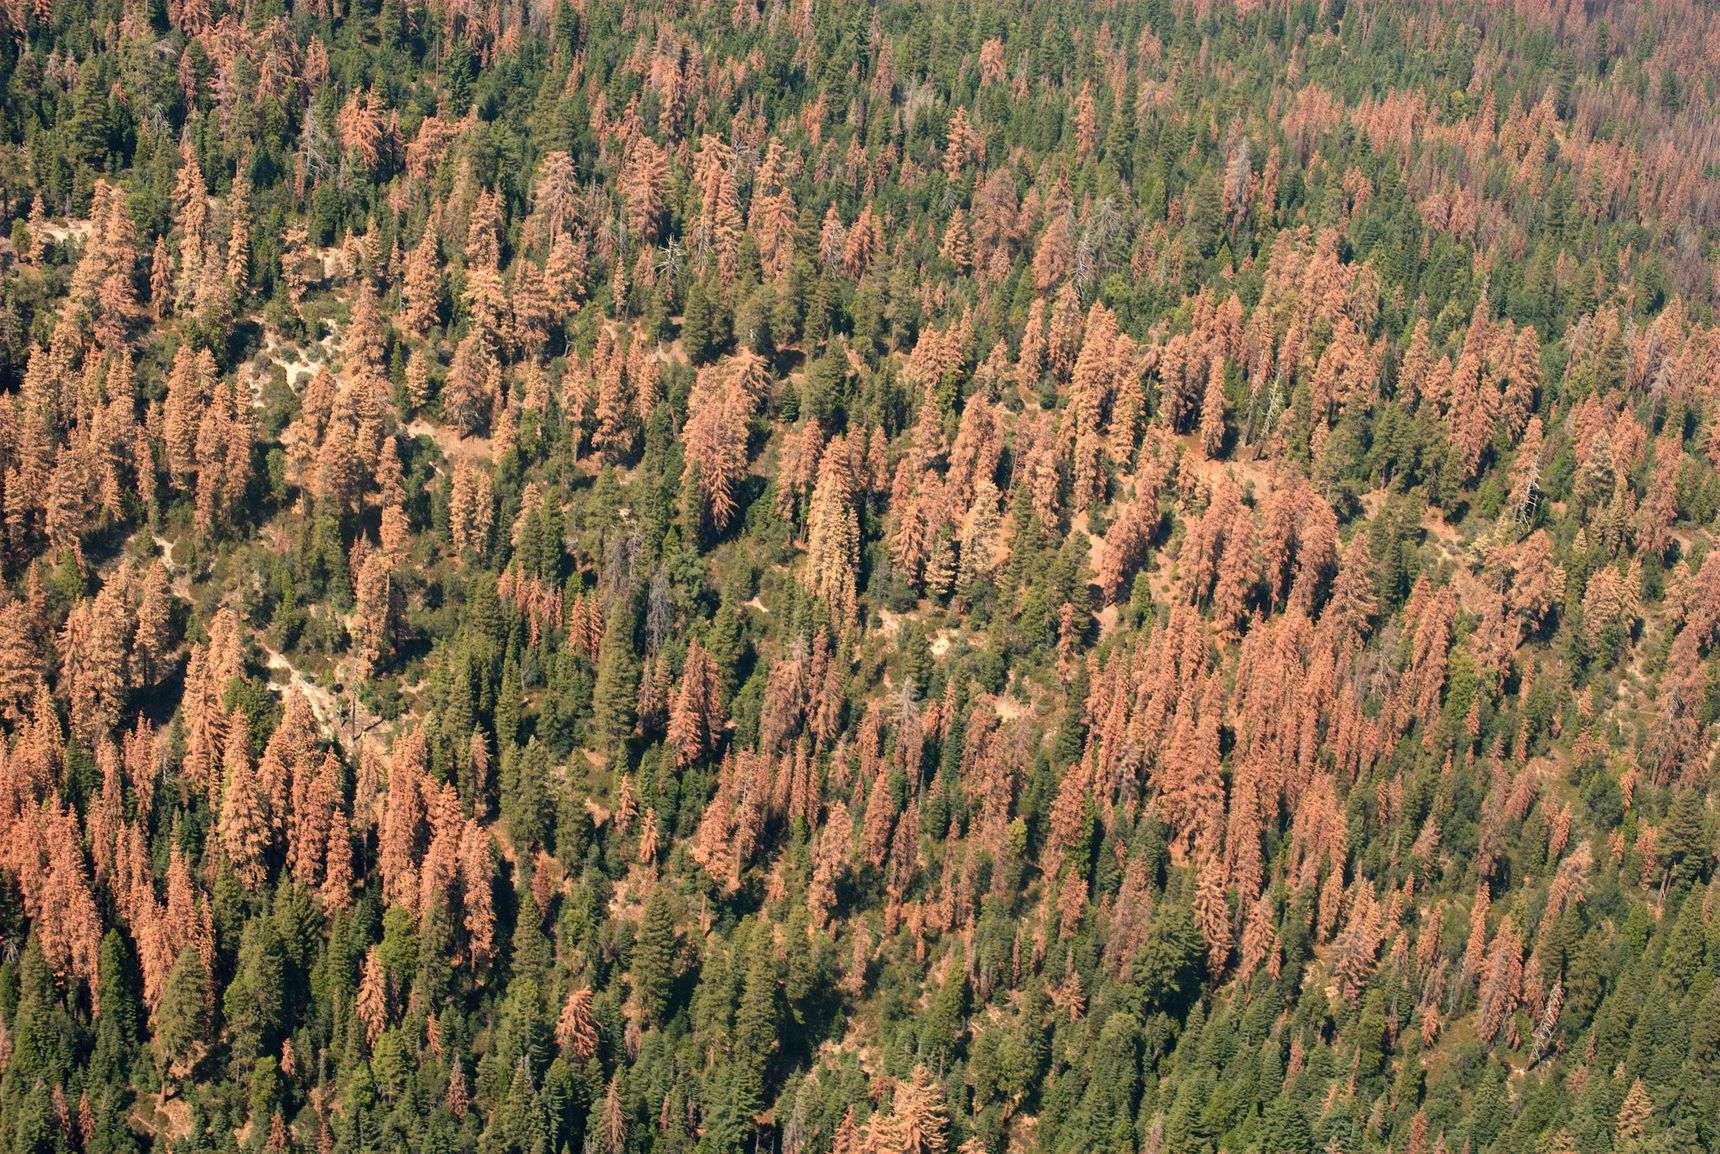 102 million dead trees in California.